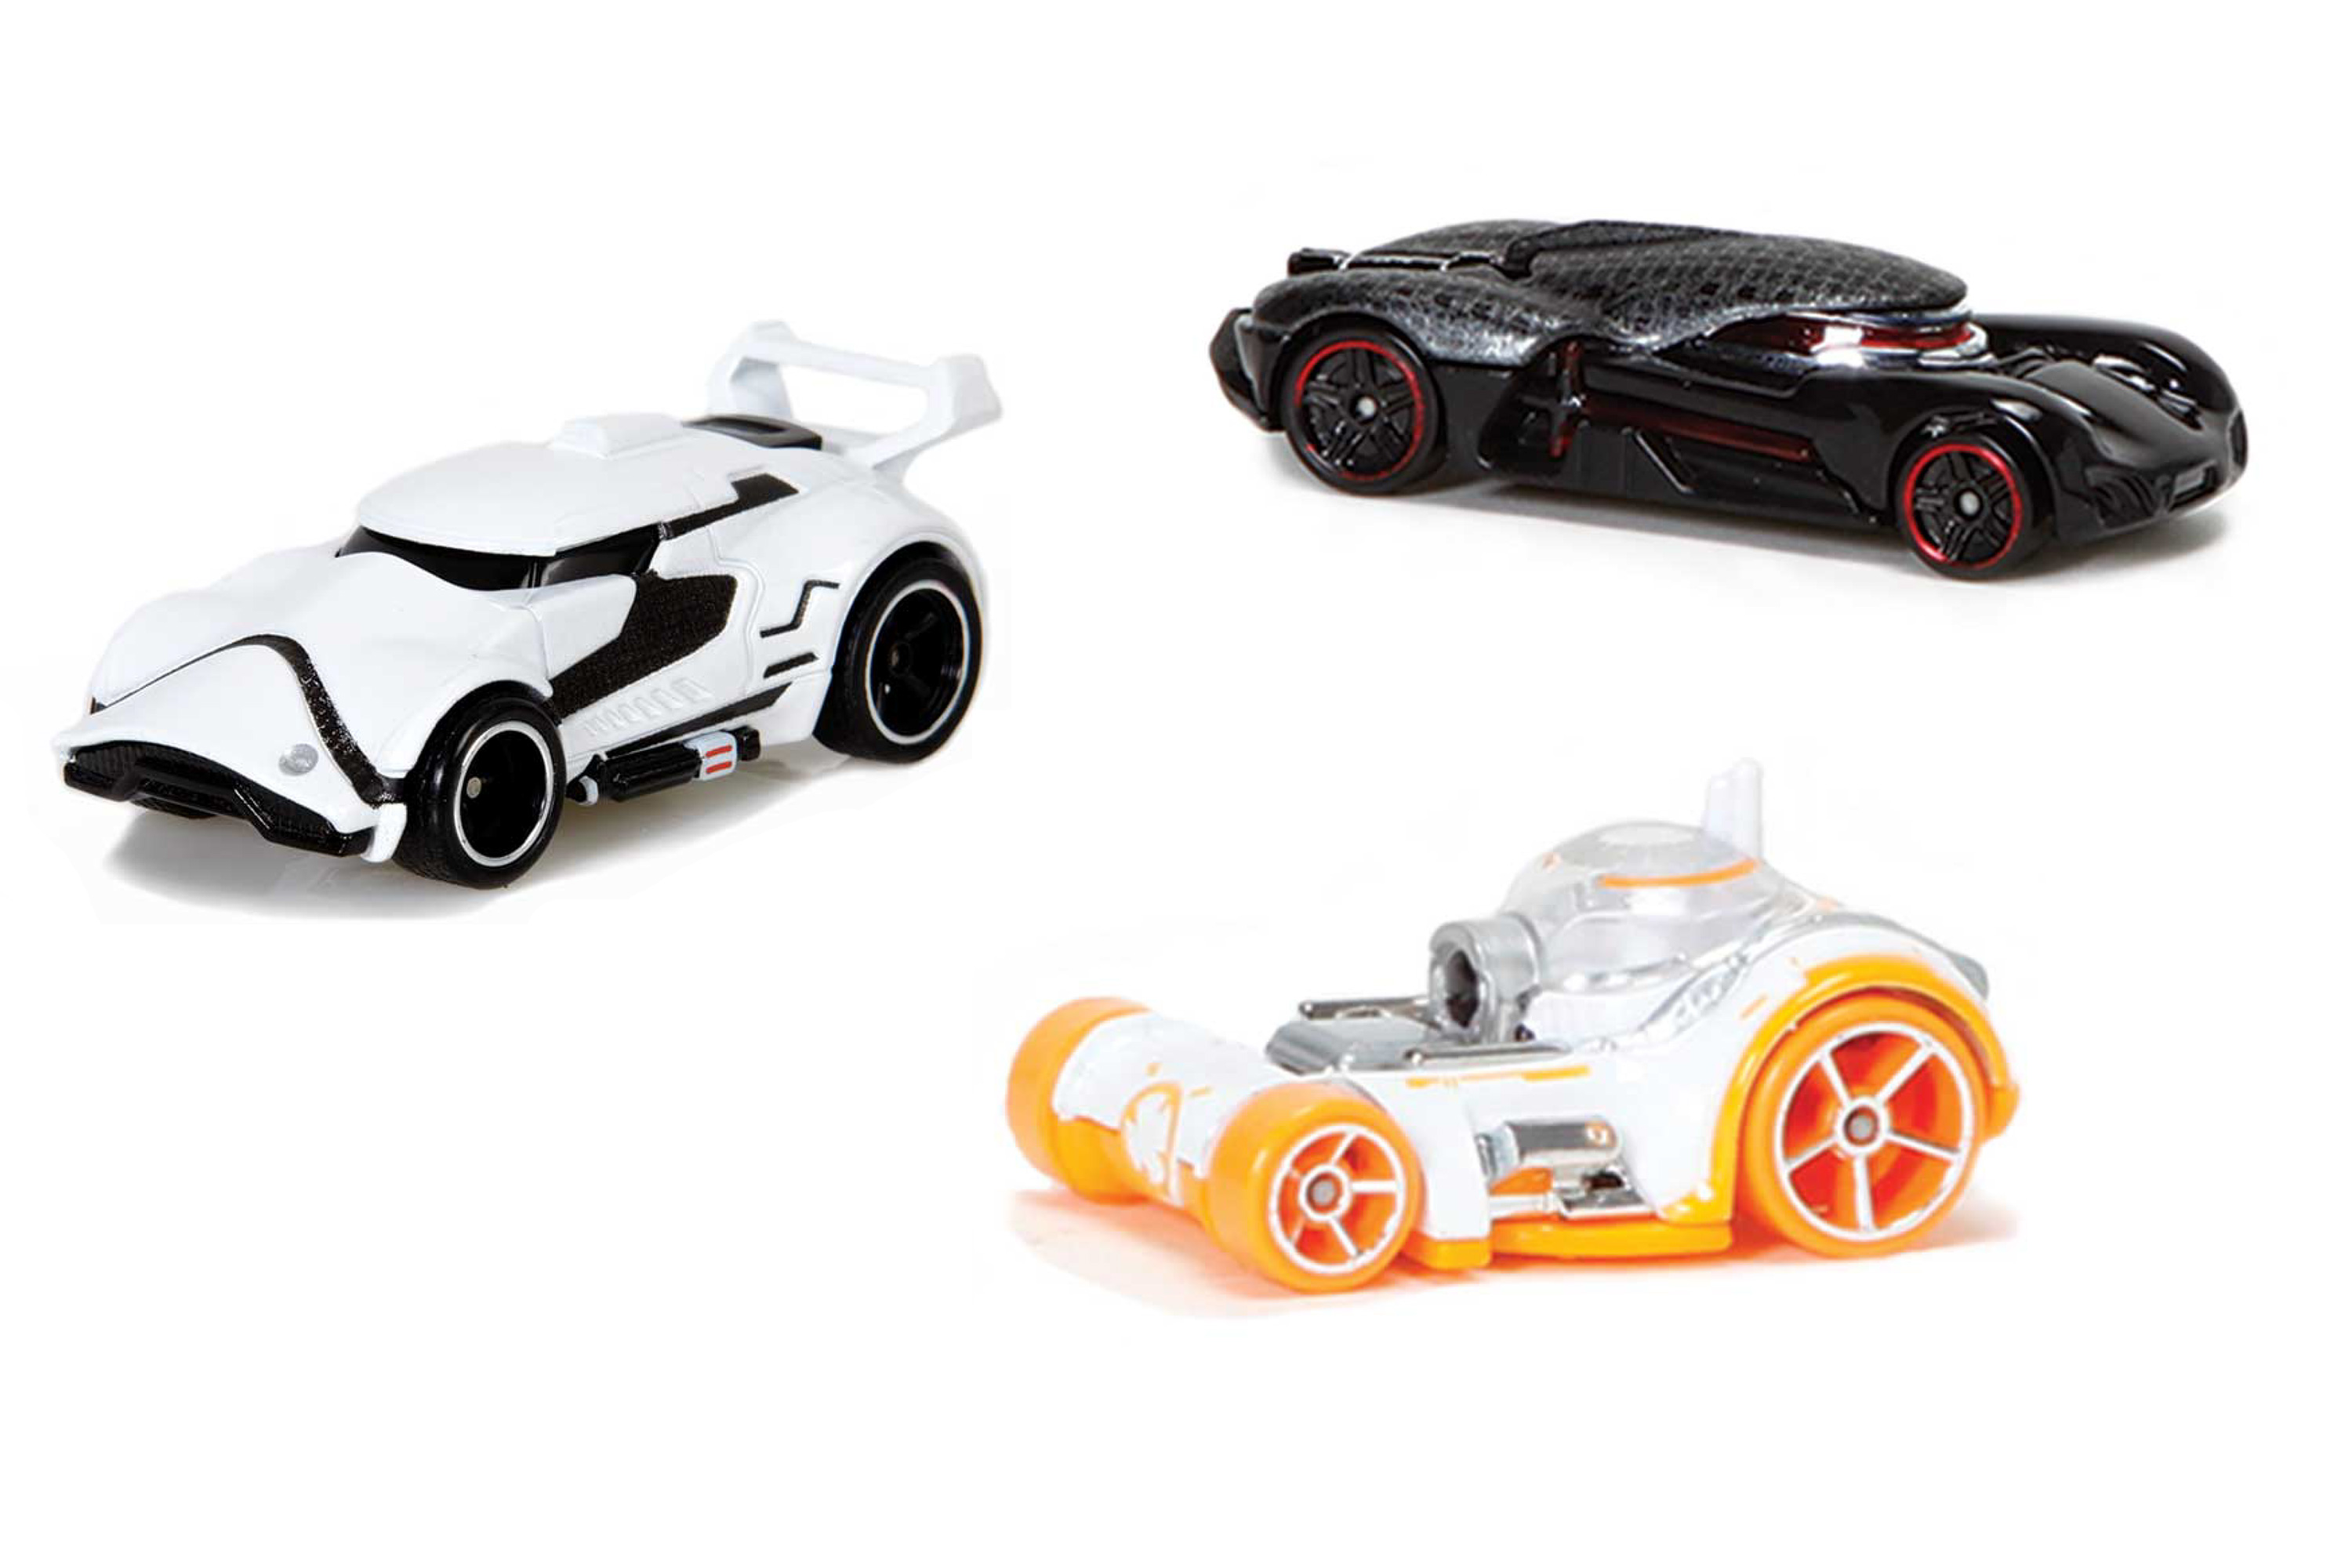 <b>Hot Wheels<i>Star Wars The Force Awakens<i>Edition</b>; First Order Stormtrooper Vehicle, Kylo Ren Character Car and BB-8 Car